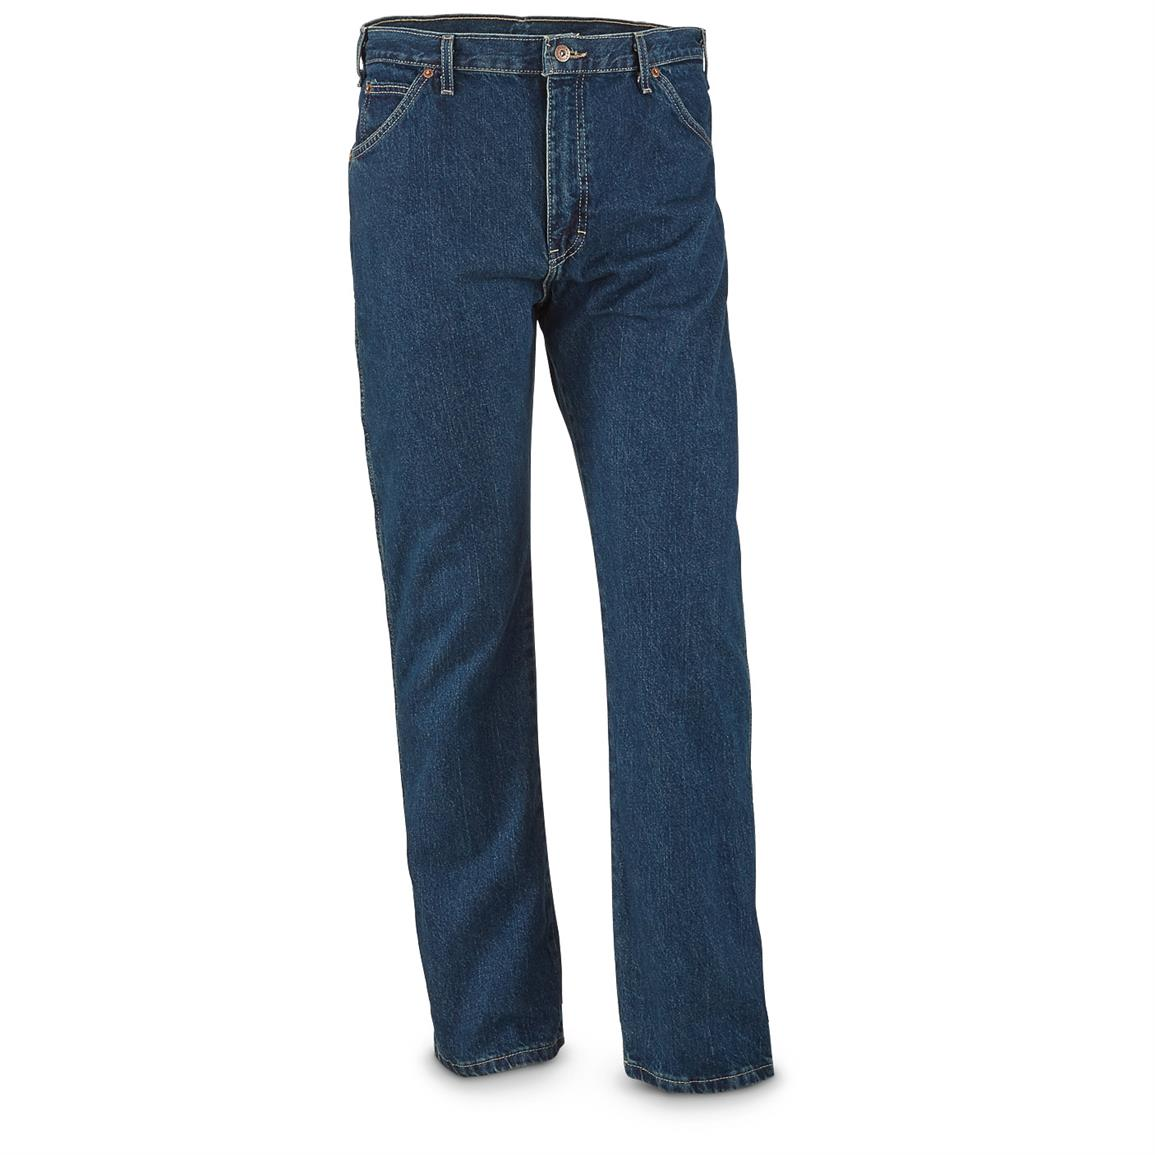 Dickies Men's Six-Pocket Western Jeans, Slight Irregulars, Heritage